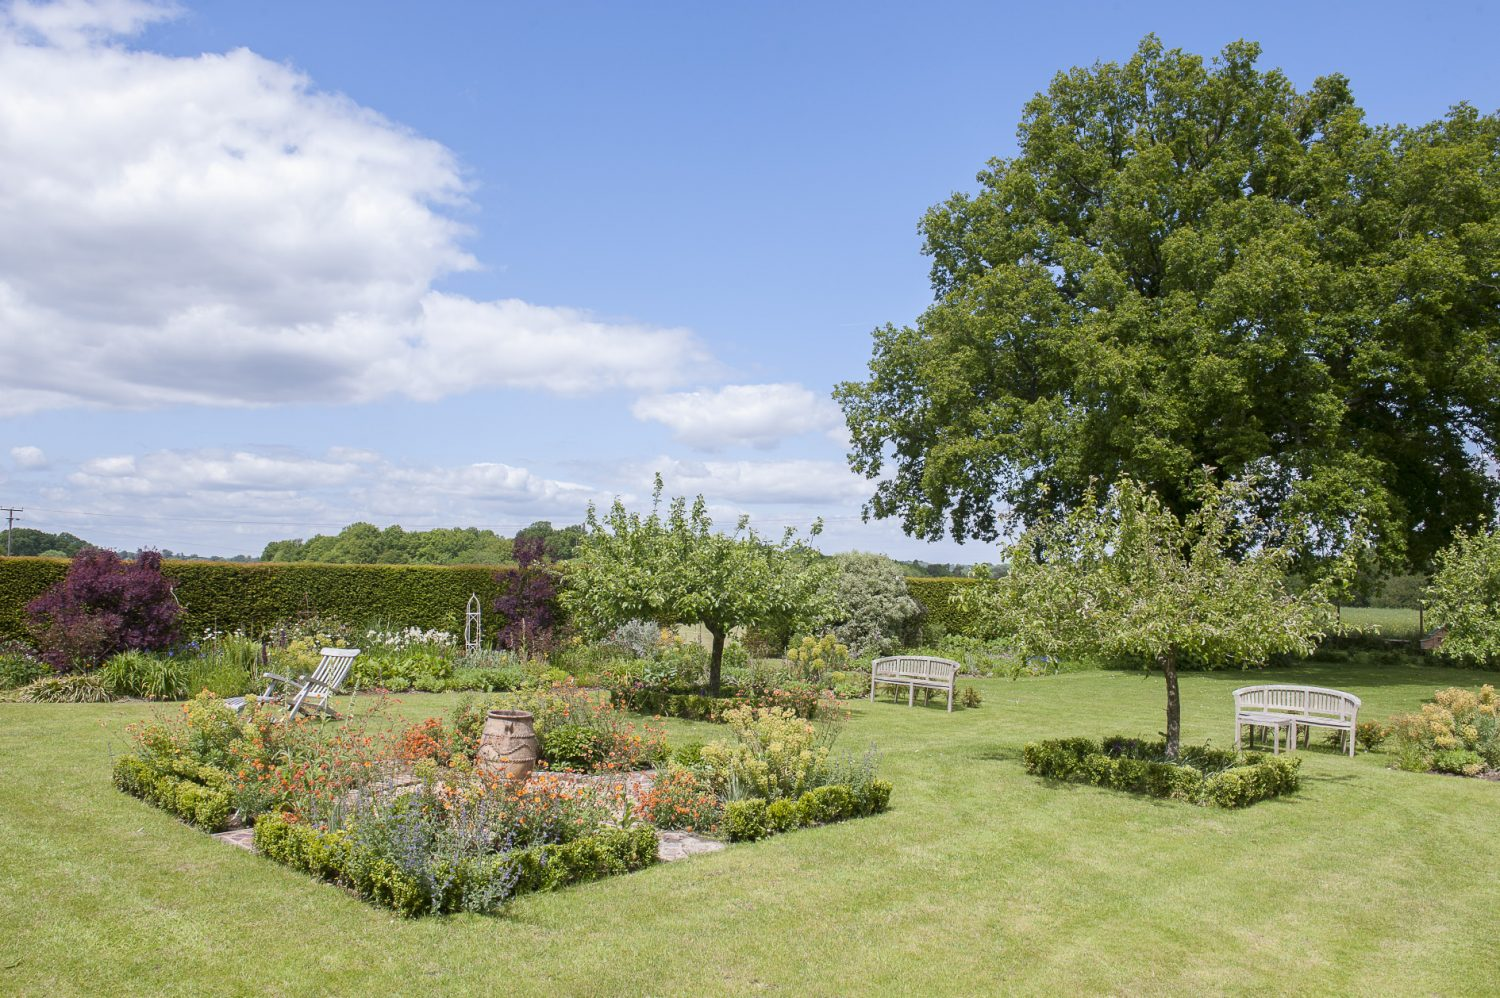 Debbie's love of structure and shape is very evident in the design of the garden. Originally this was just a large expanse of lawn with shrubs around the edge but over the years it has been transformed into a series of inspiring and original garden rooms